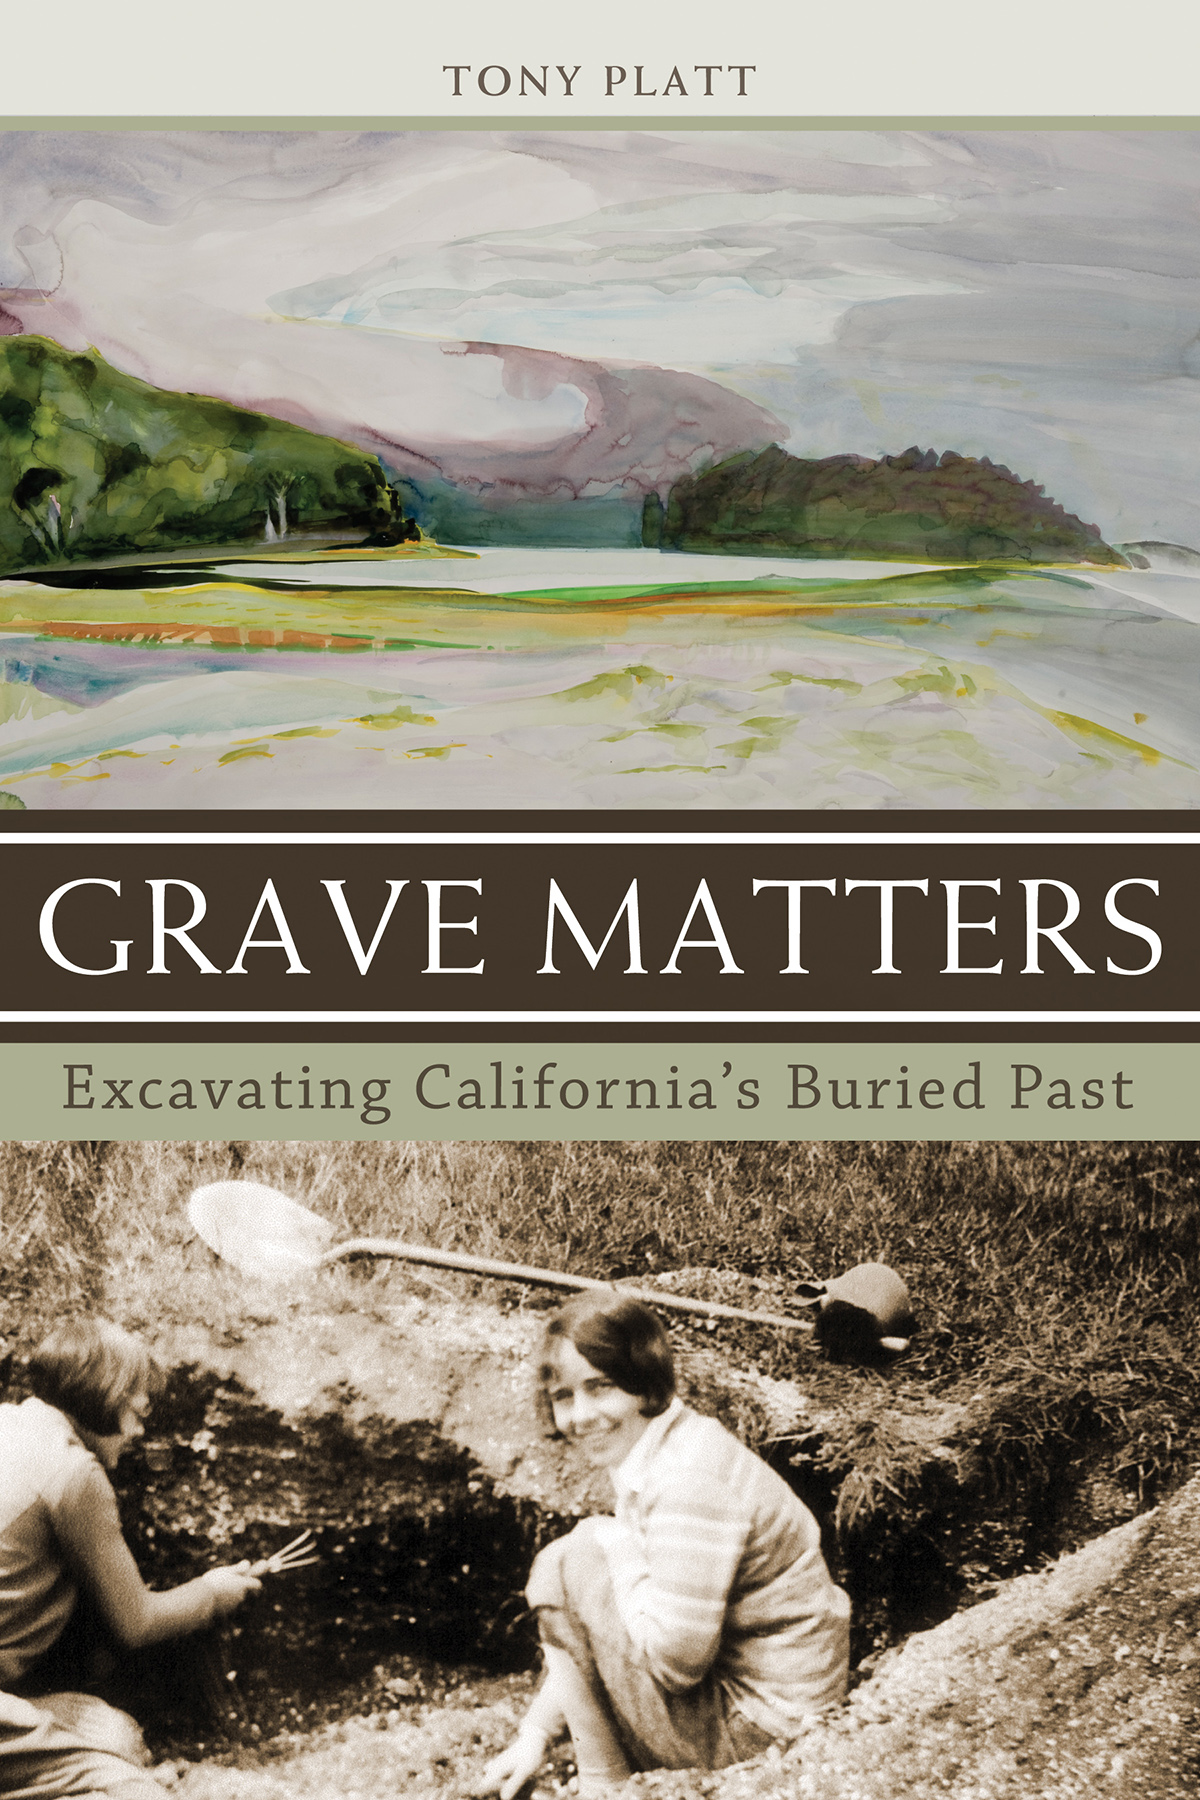 Grave Matters: Excavating California's Buried Past